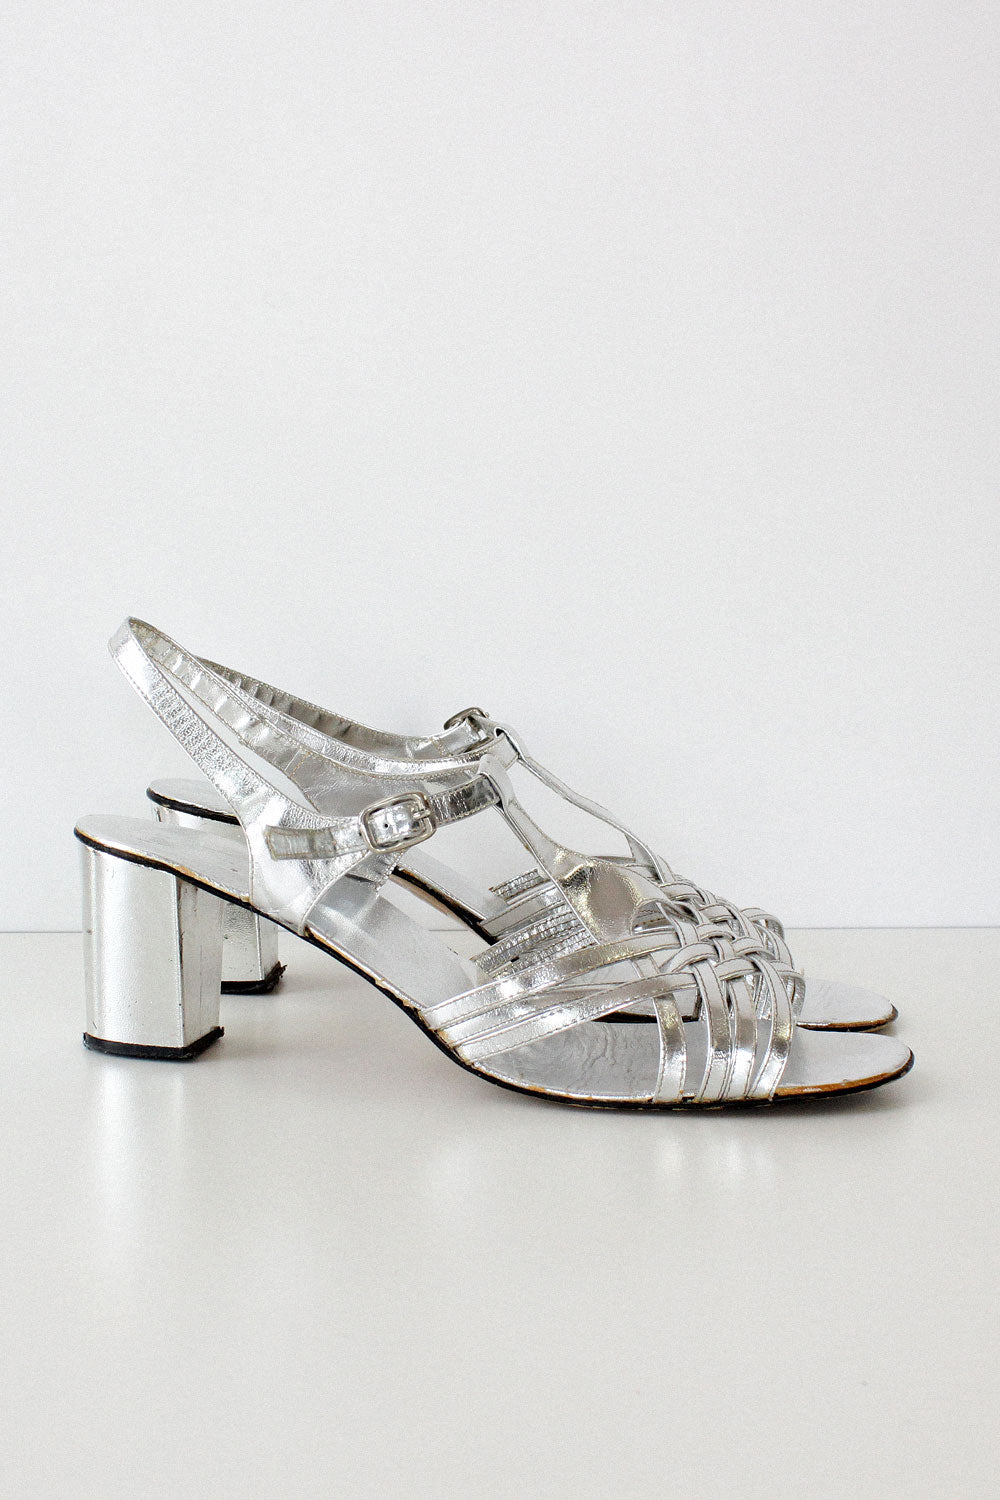 Silver Strappy Sandals 10